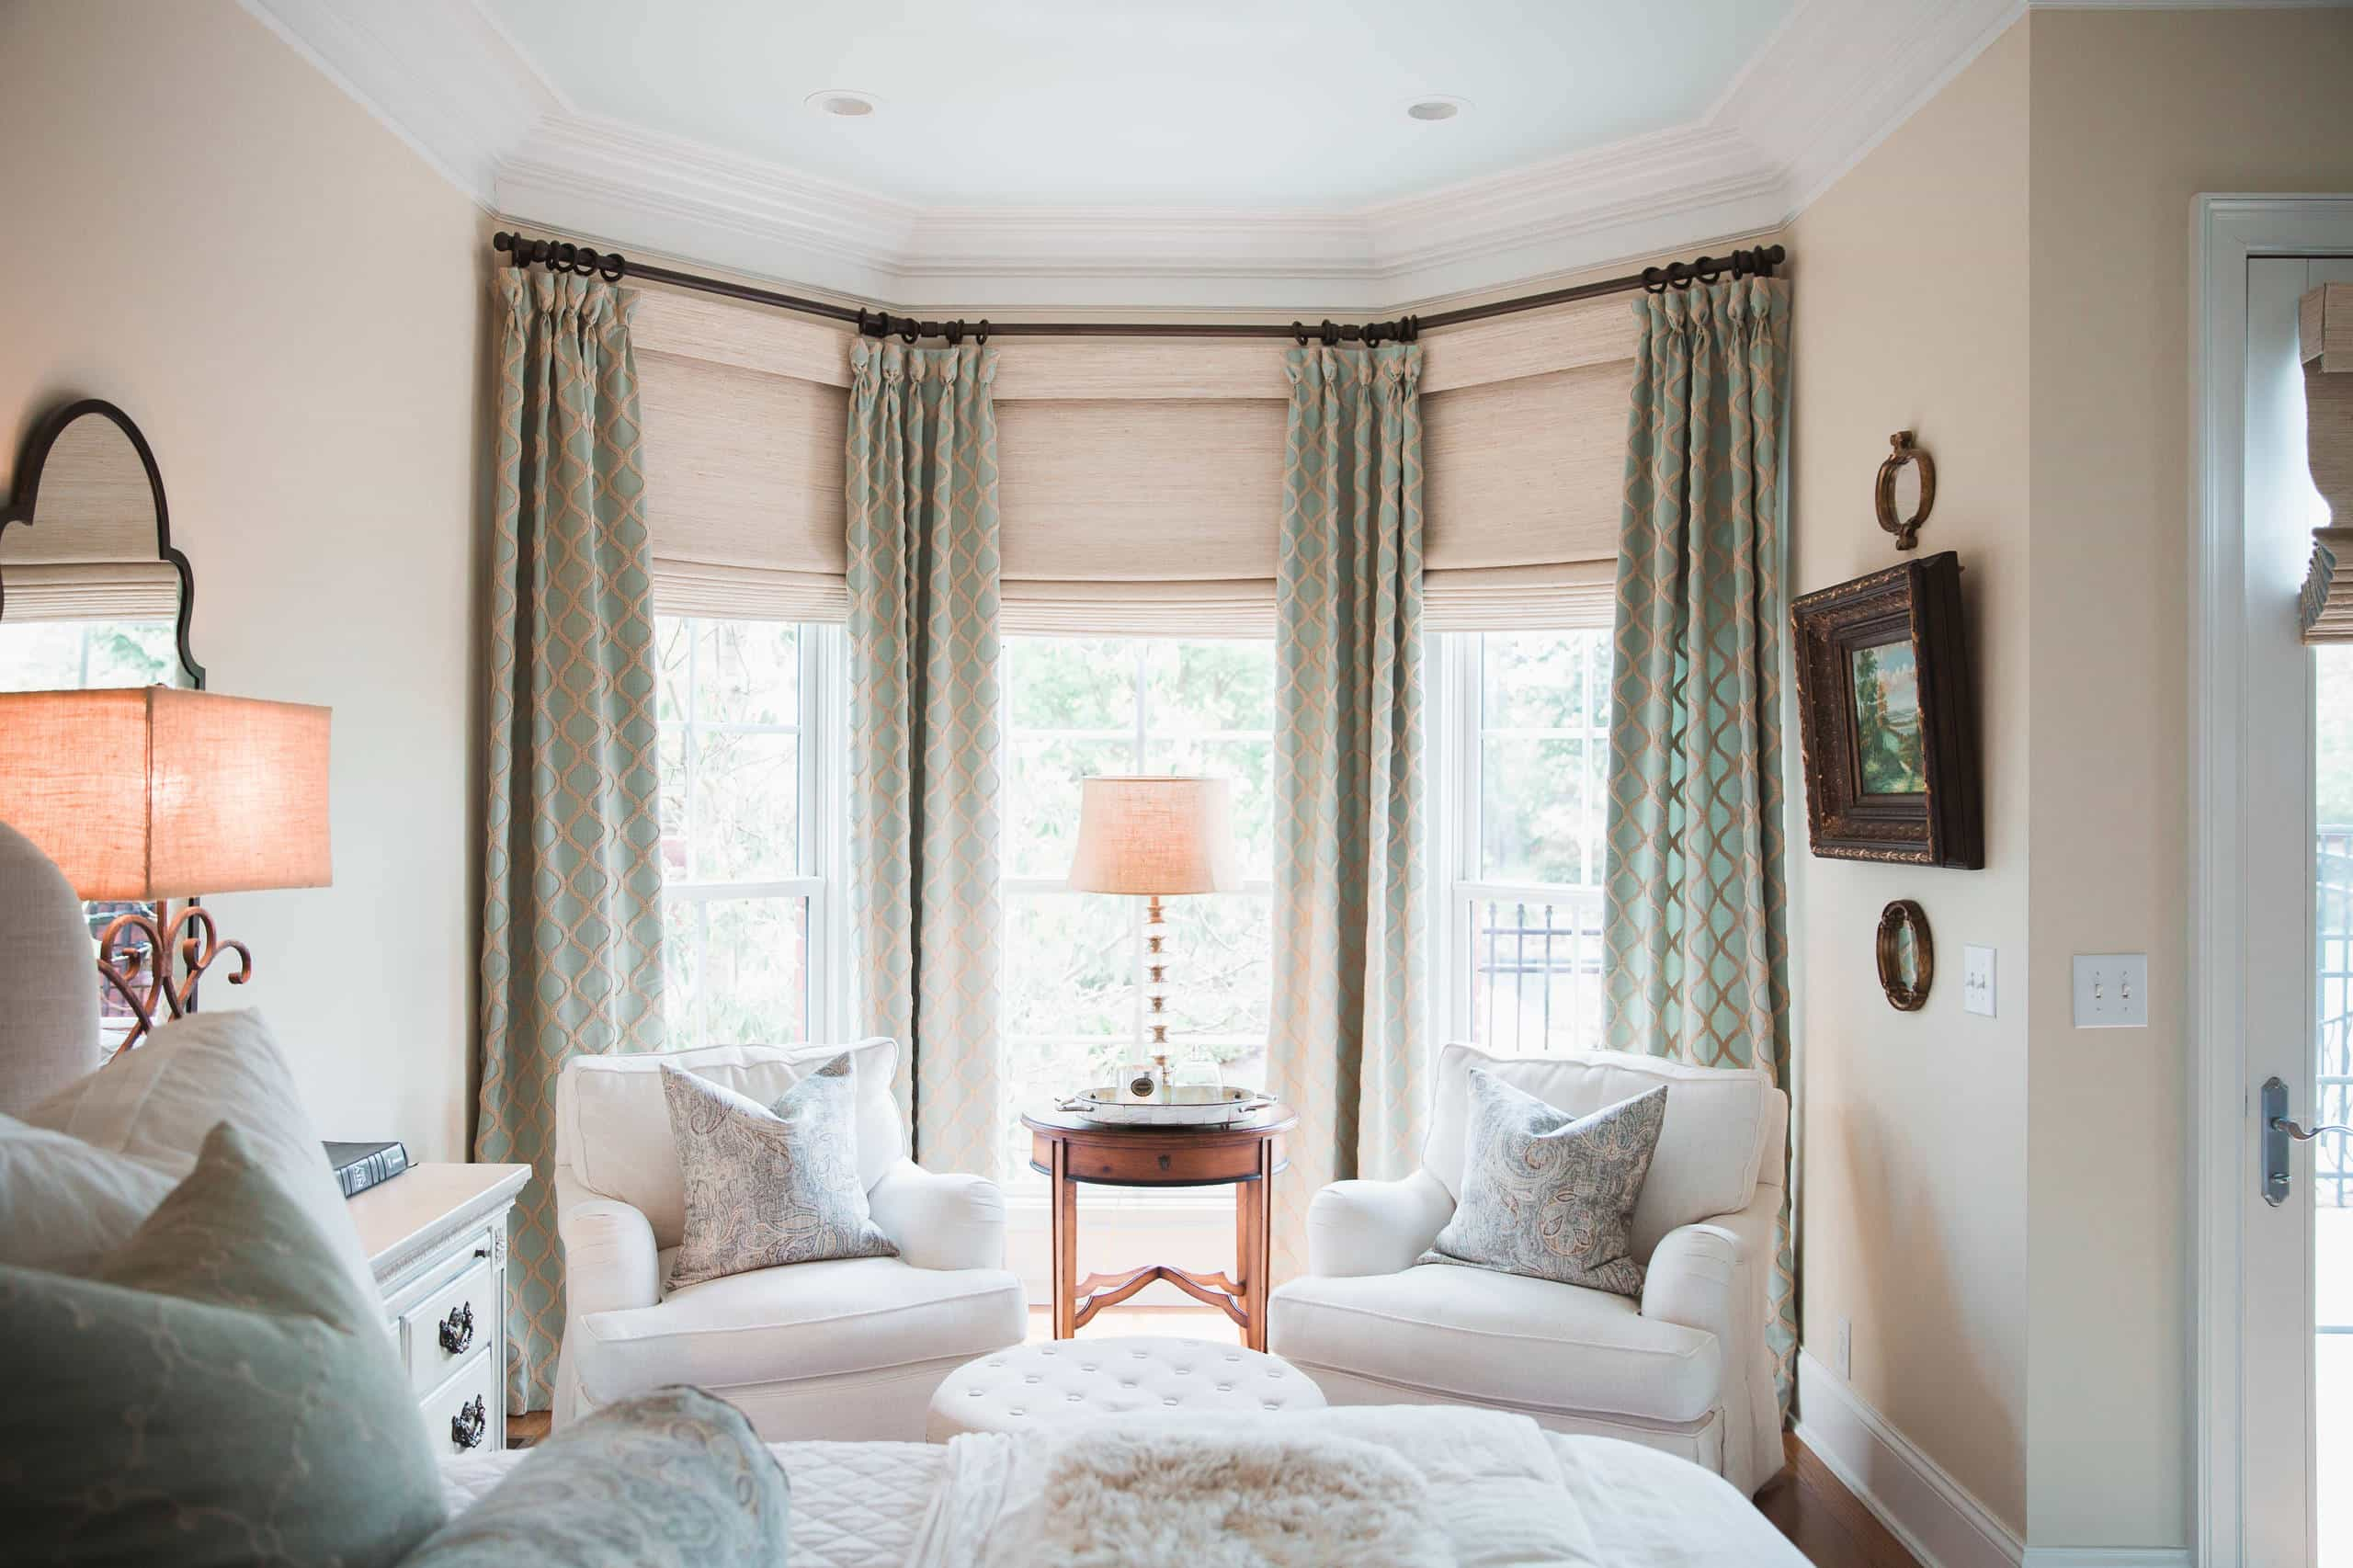 How Do You Hang Curtains In A Bay Windows